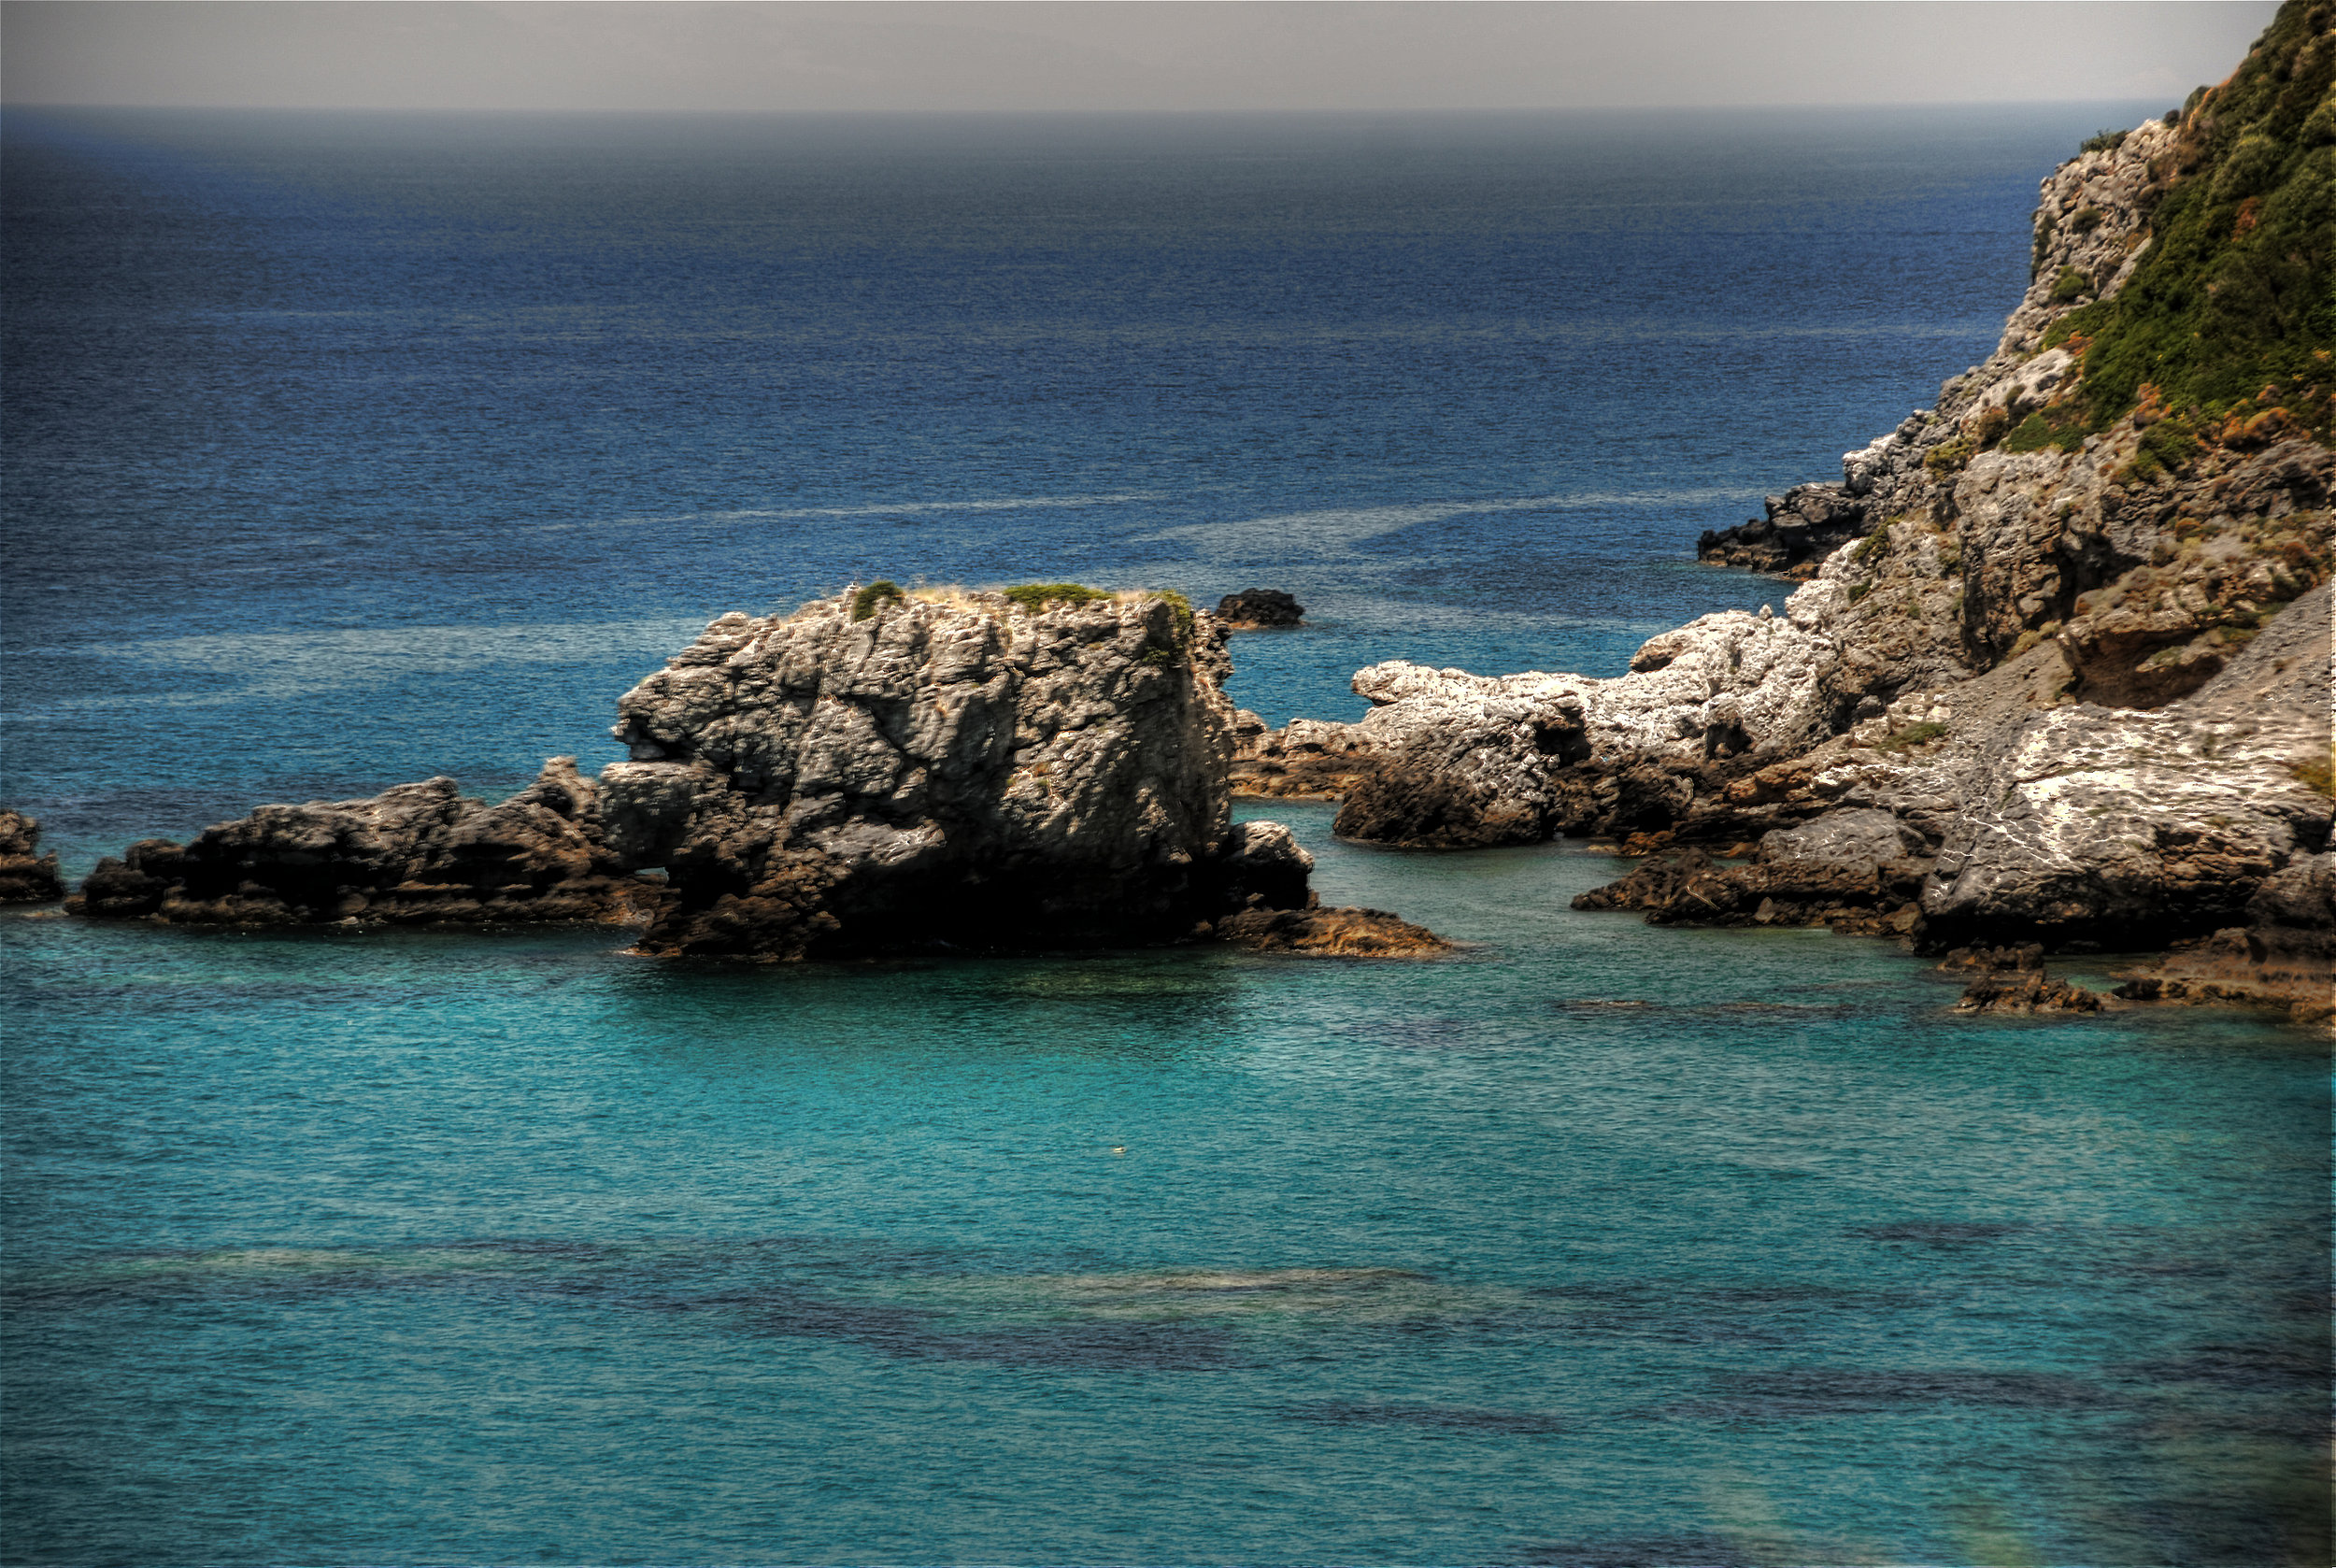 Photo credit: Tony Bevington   [Image description: craggy, rough cliffs rising from a calm Aegean sea]